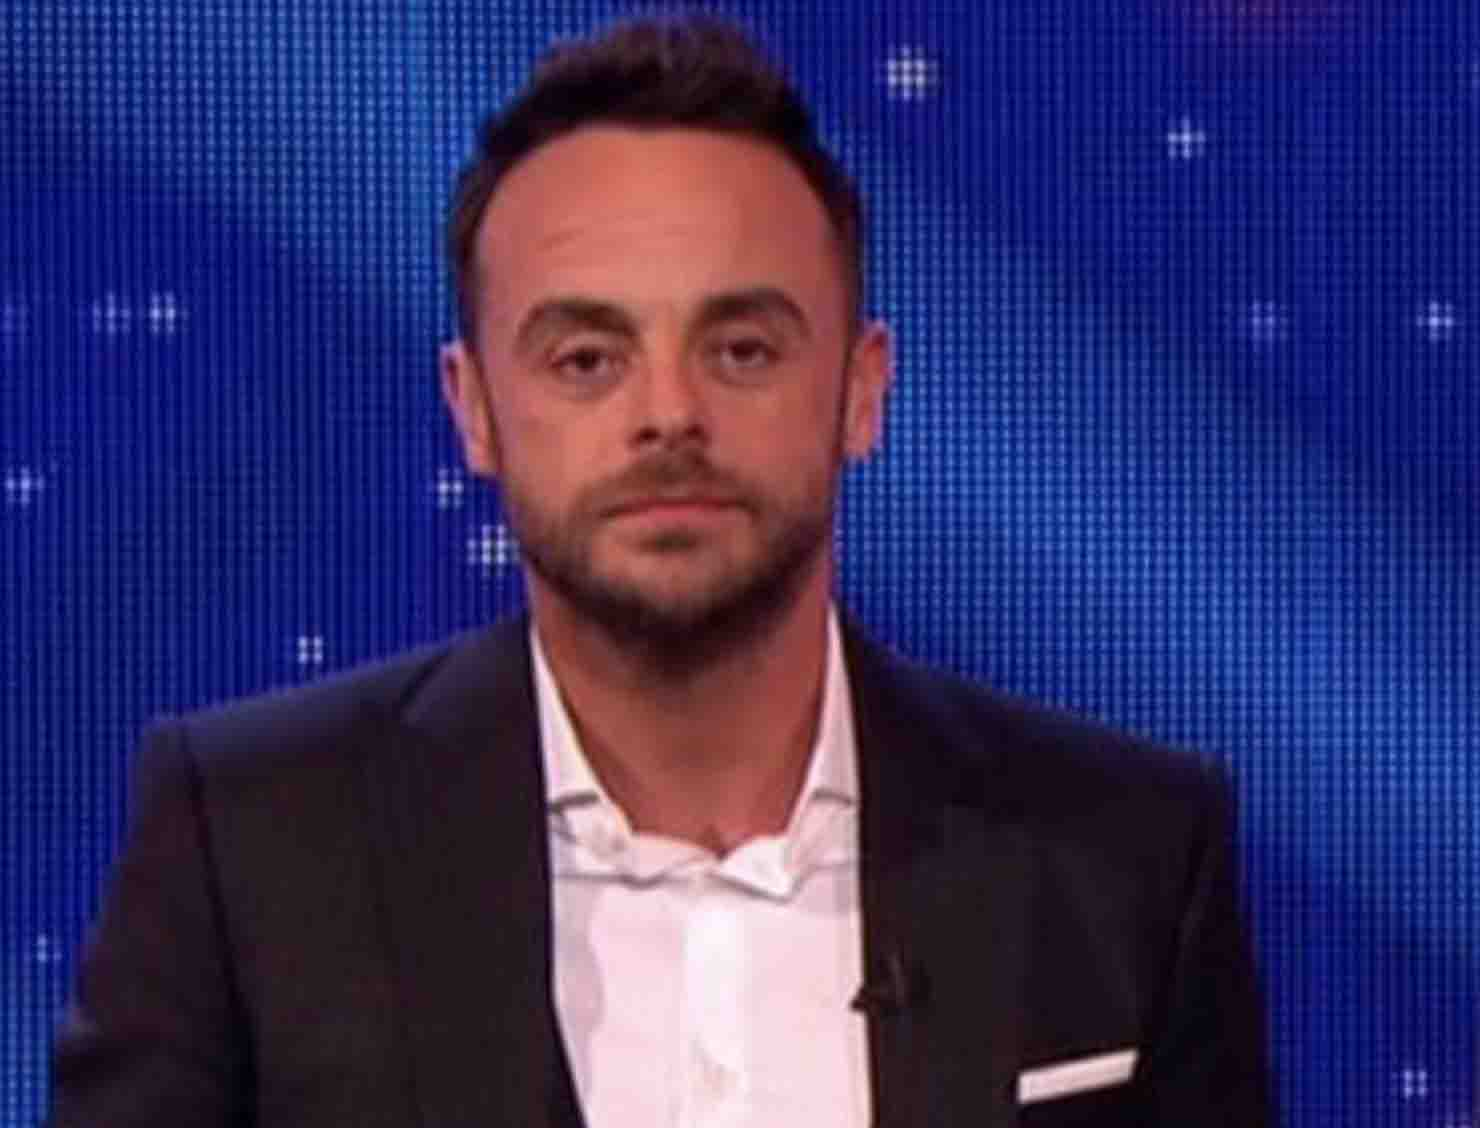 Ant McPartlin arrested after 'drink drive crash'